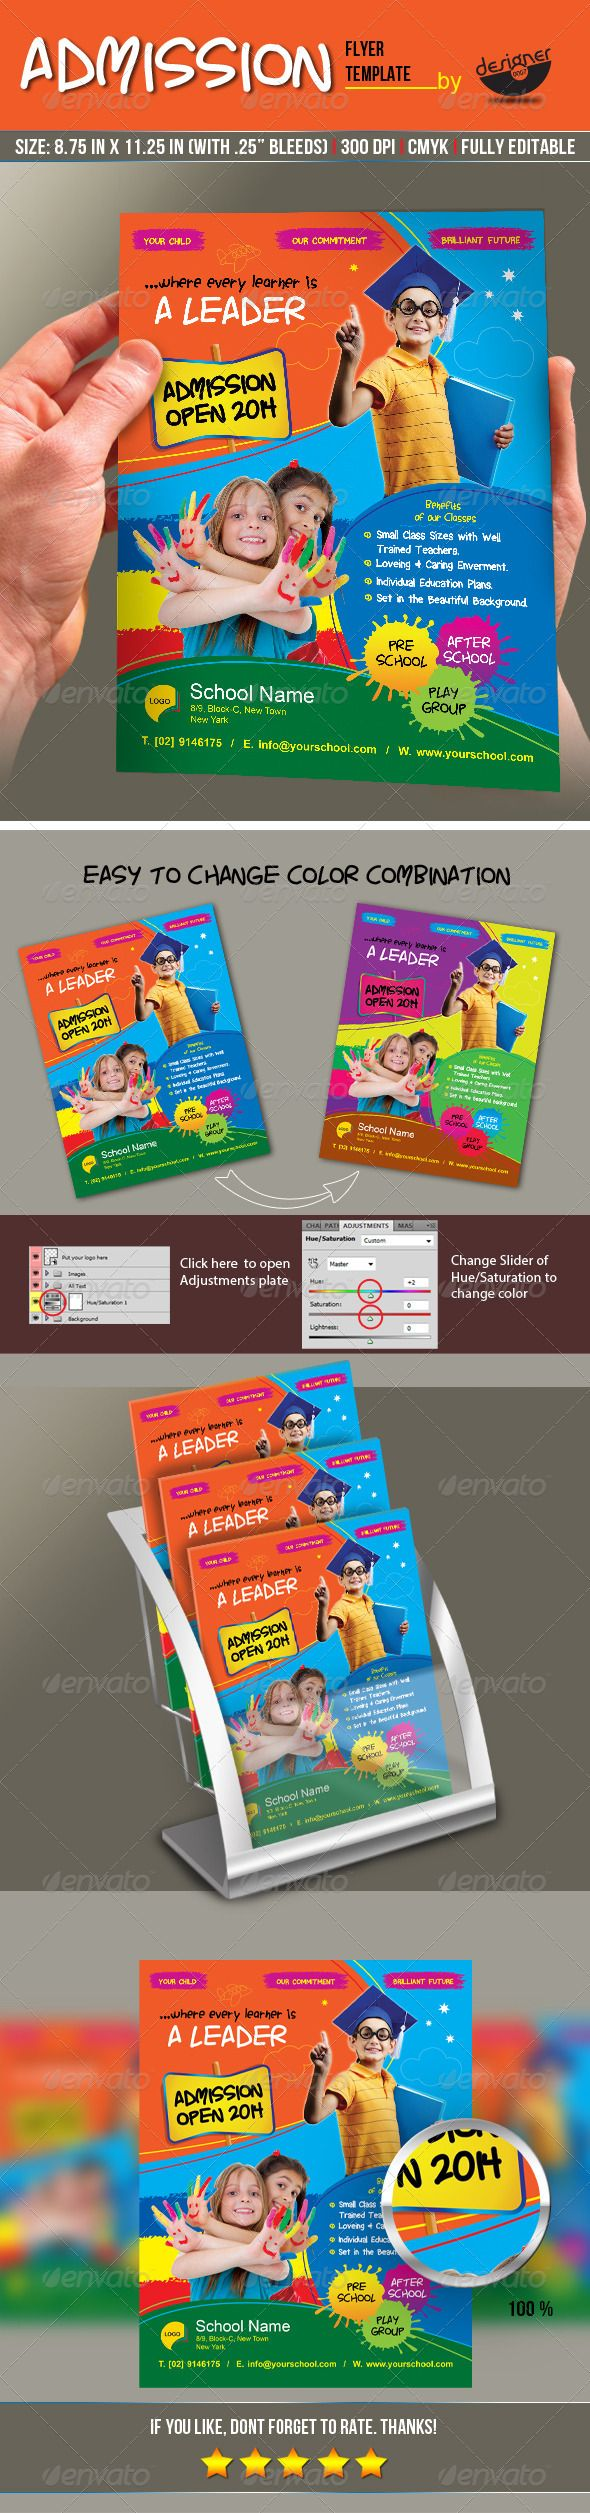 Junior School Admission Flyer Template  School Admissions Flyer